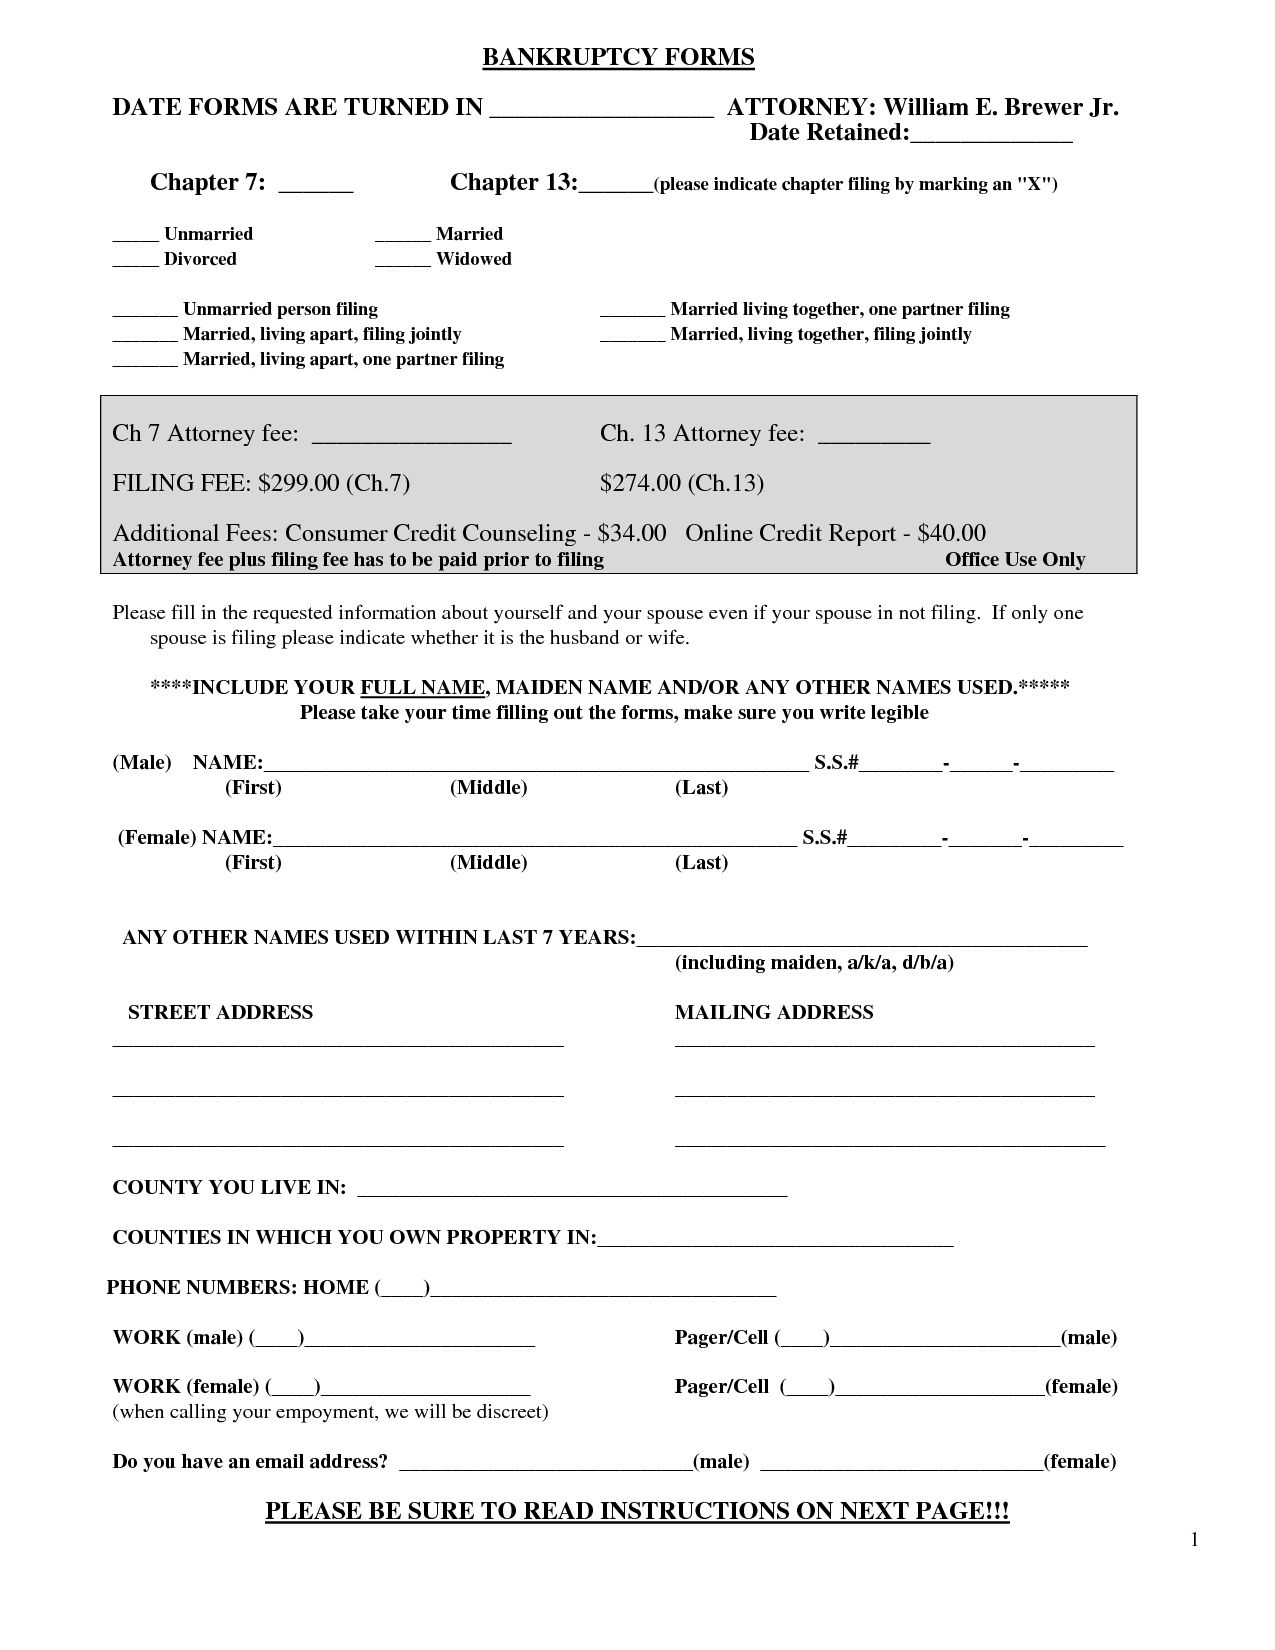 Bankruptcy sample form bankruptcy sample form sample for Bankruptcy letter of explanation template